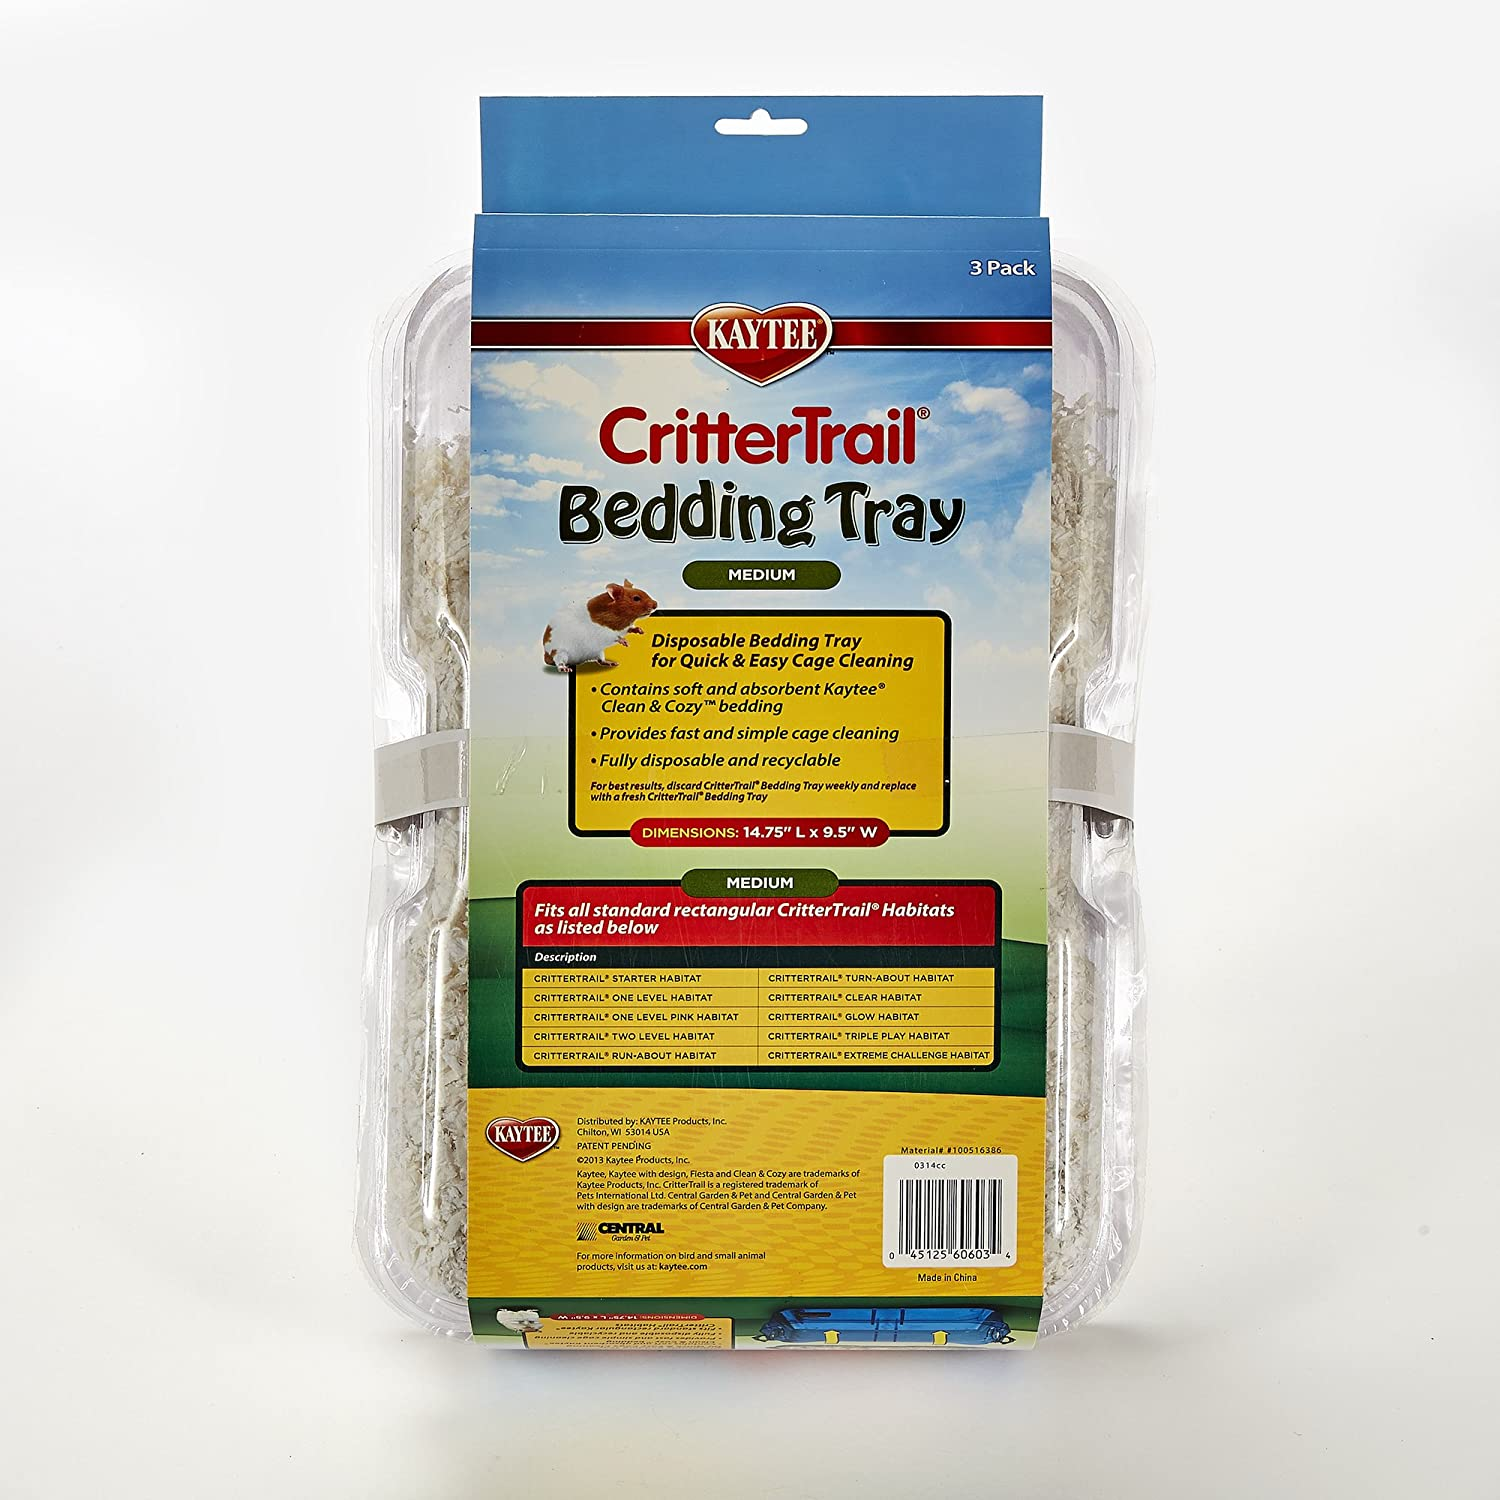 Amazon.com: Kaytee Critter Trail URNnDO Bedding Tray Habitat (Pack of 2): Home & Kitchen